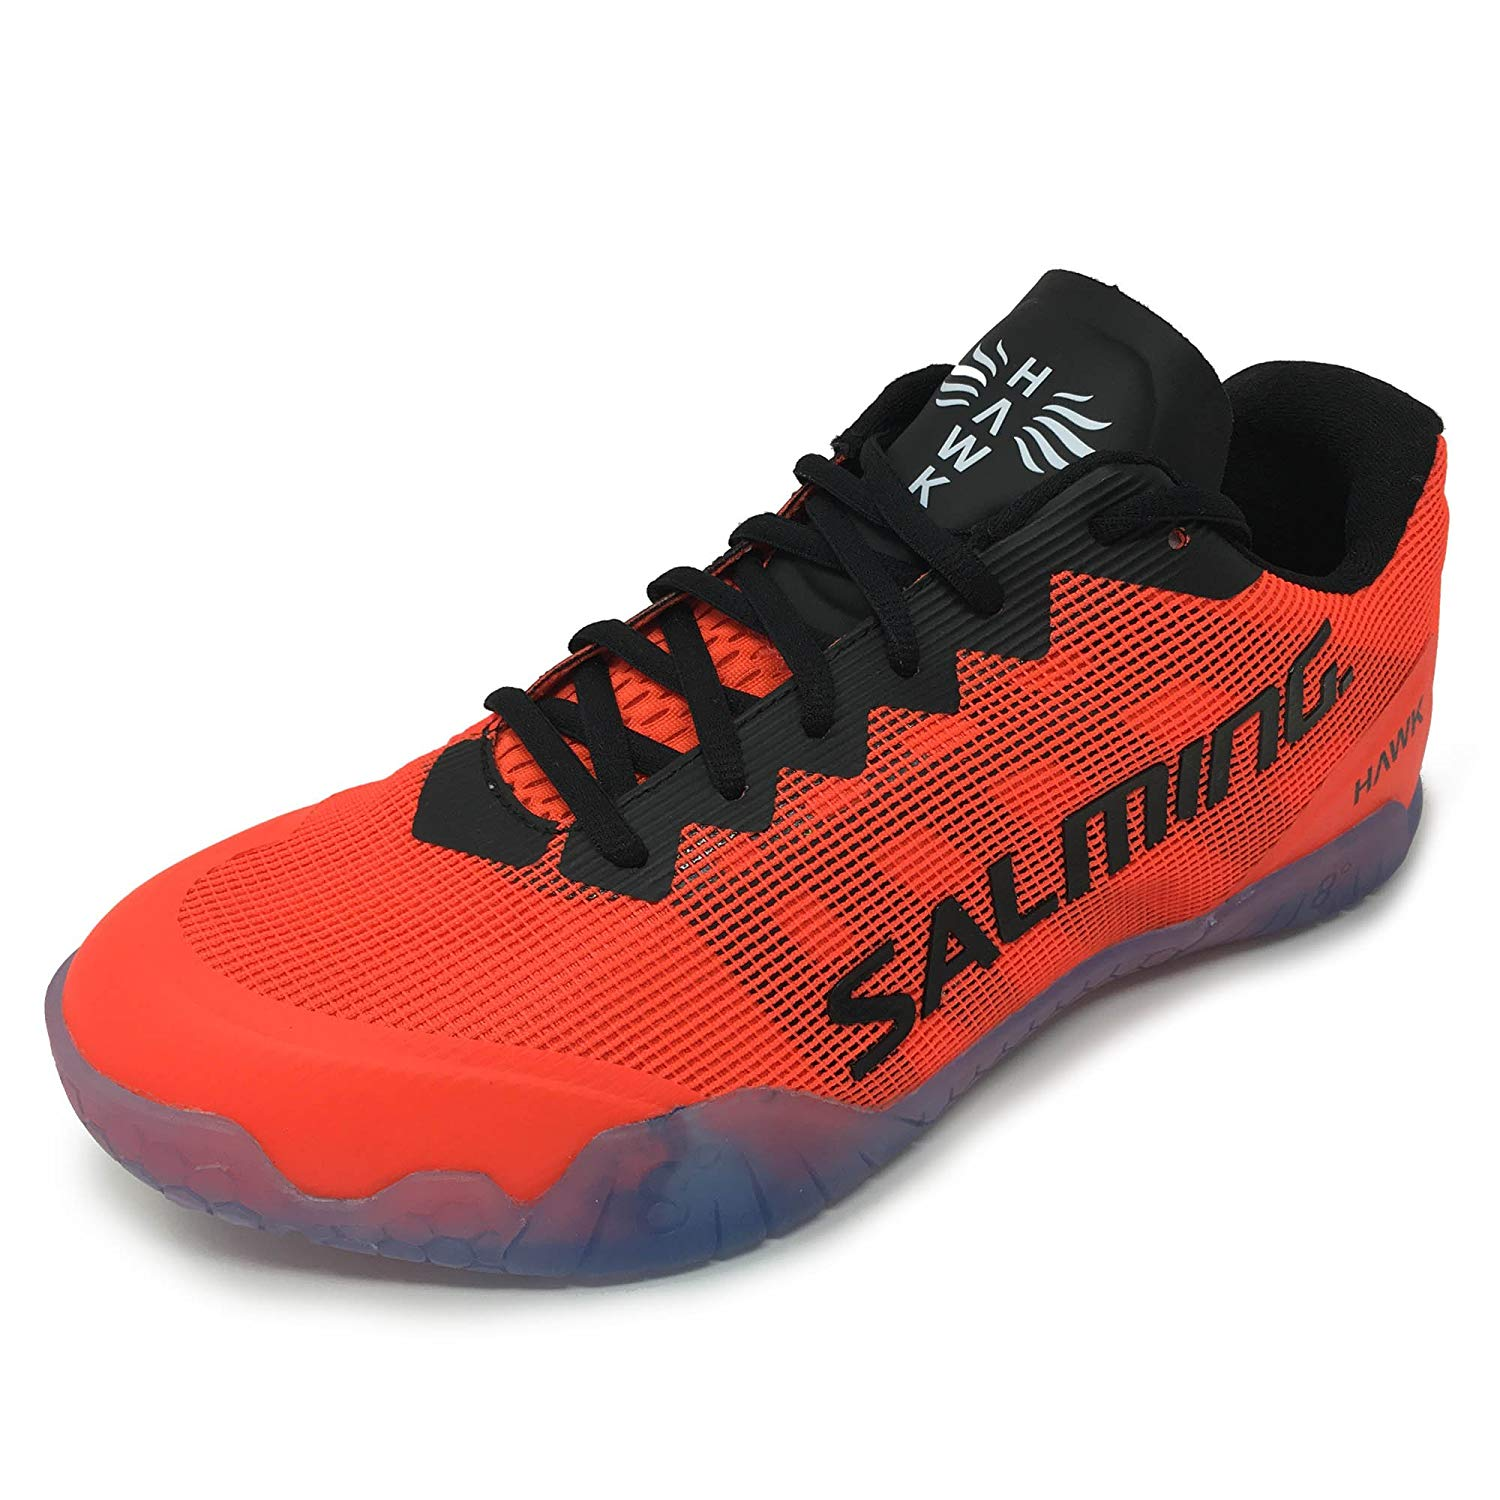 Salming Adder Womens Squash Indoor Court Sports Training Shoes Trainers